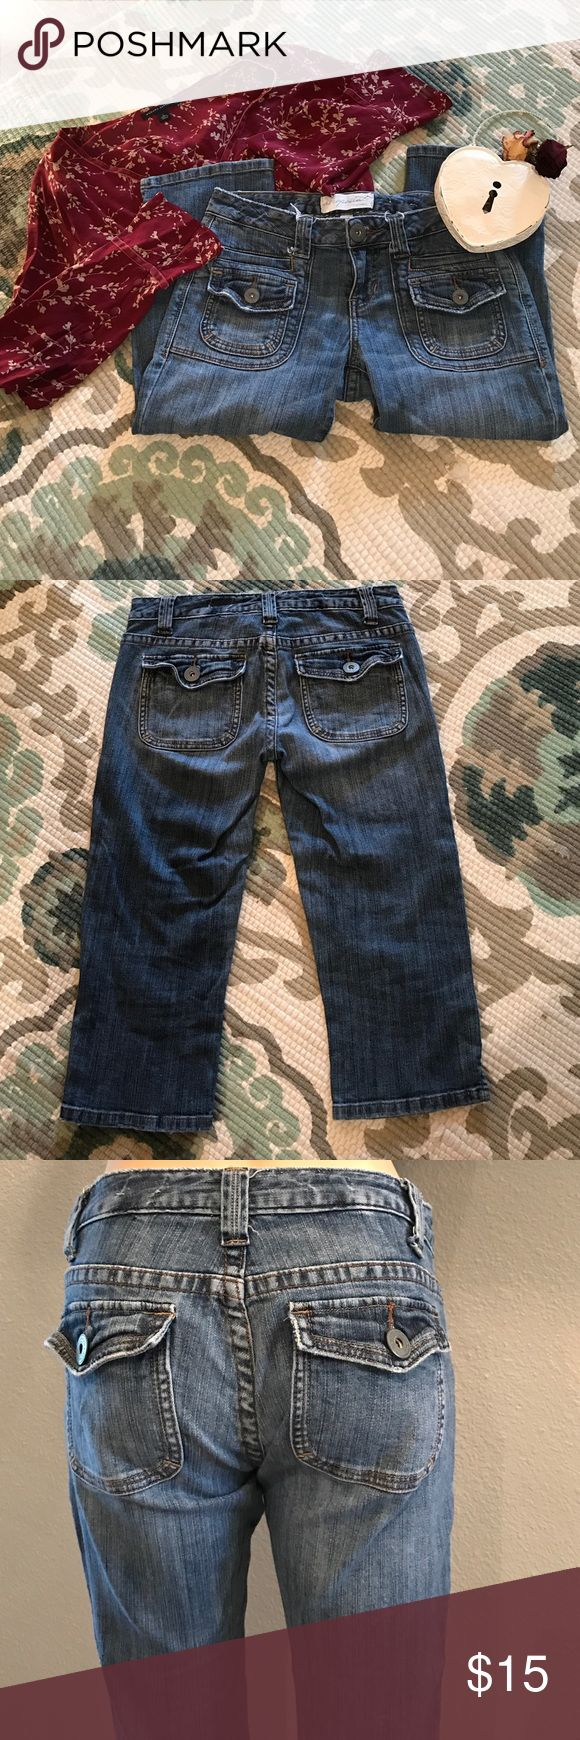 Aeropostale cargo 👖 Aeropostale distressed cargo jeans. These have been worn and have wear but still lots of life, no stains or holes. Inseam is 19. Bundle with more in my closet to save$$$ VERY CUTE JEANS!! Aeropostale Jeans Ankle & Cropped